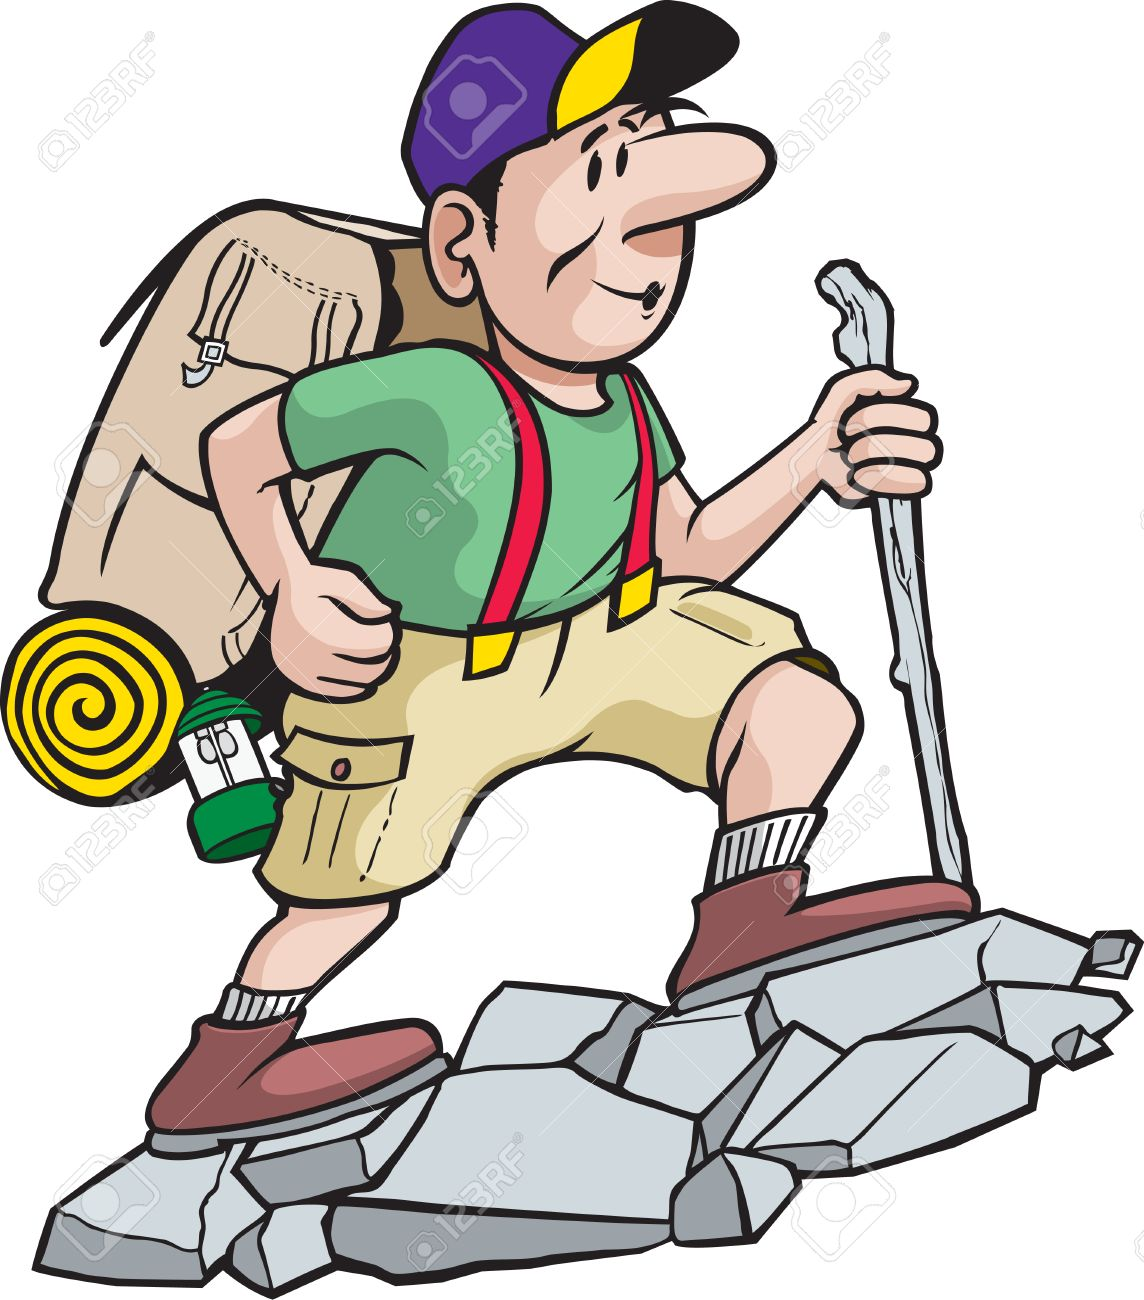 a cartoon hiker enjoying the great outdoors royalty free cliparts rh 123rf com cartoon hiker images cartoon hiking boots